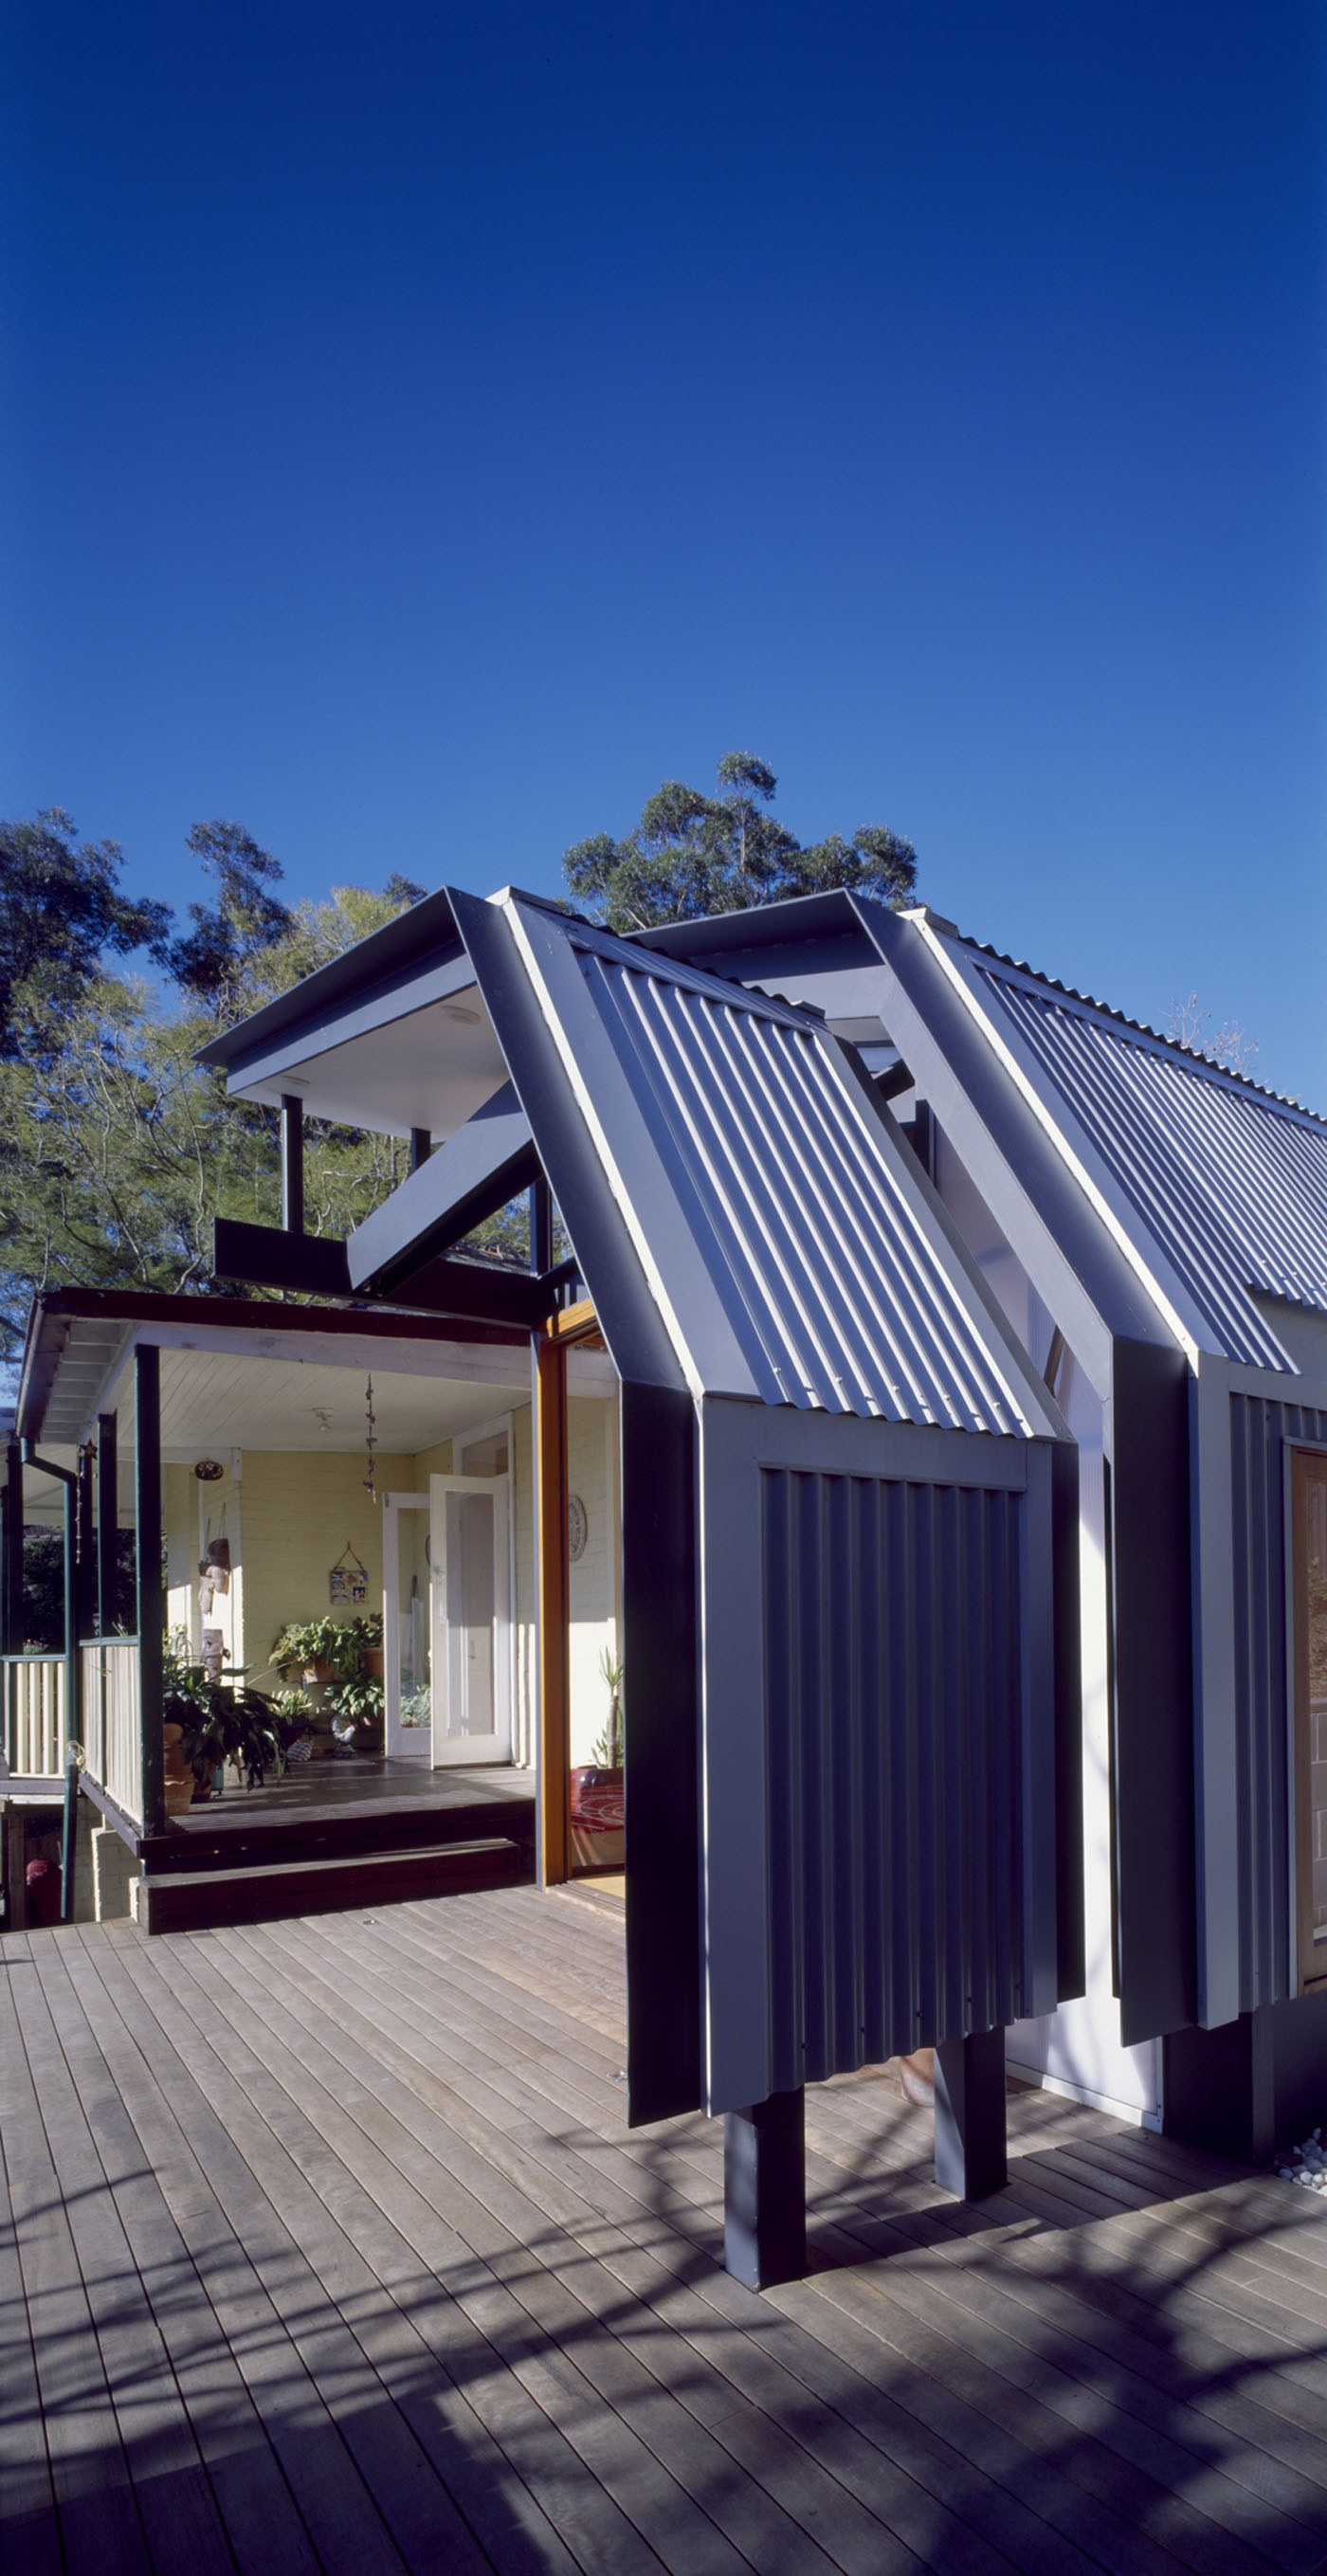 Wave House by Sydney award winning residential architecture firm Sam Crawford Architects. Folded metal deck roof provides shading in summer and allows sunlight penetration in winter.